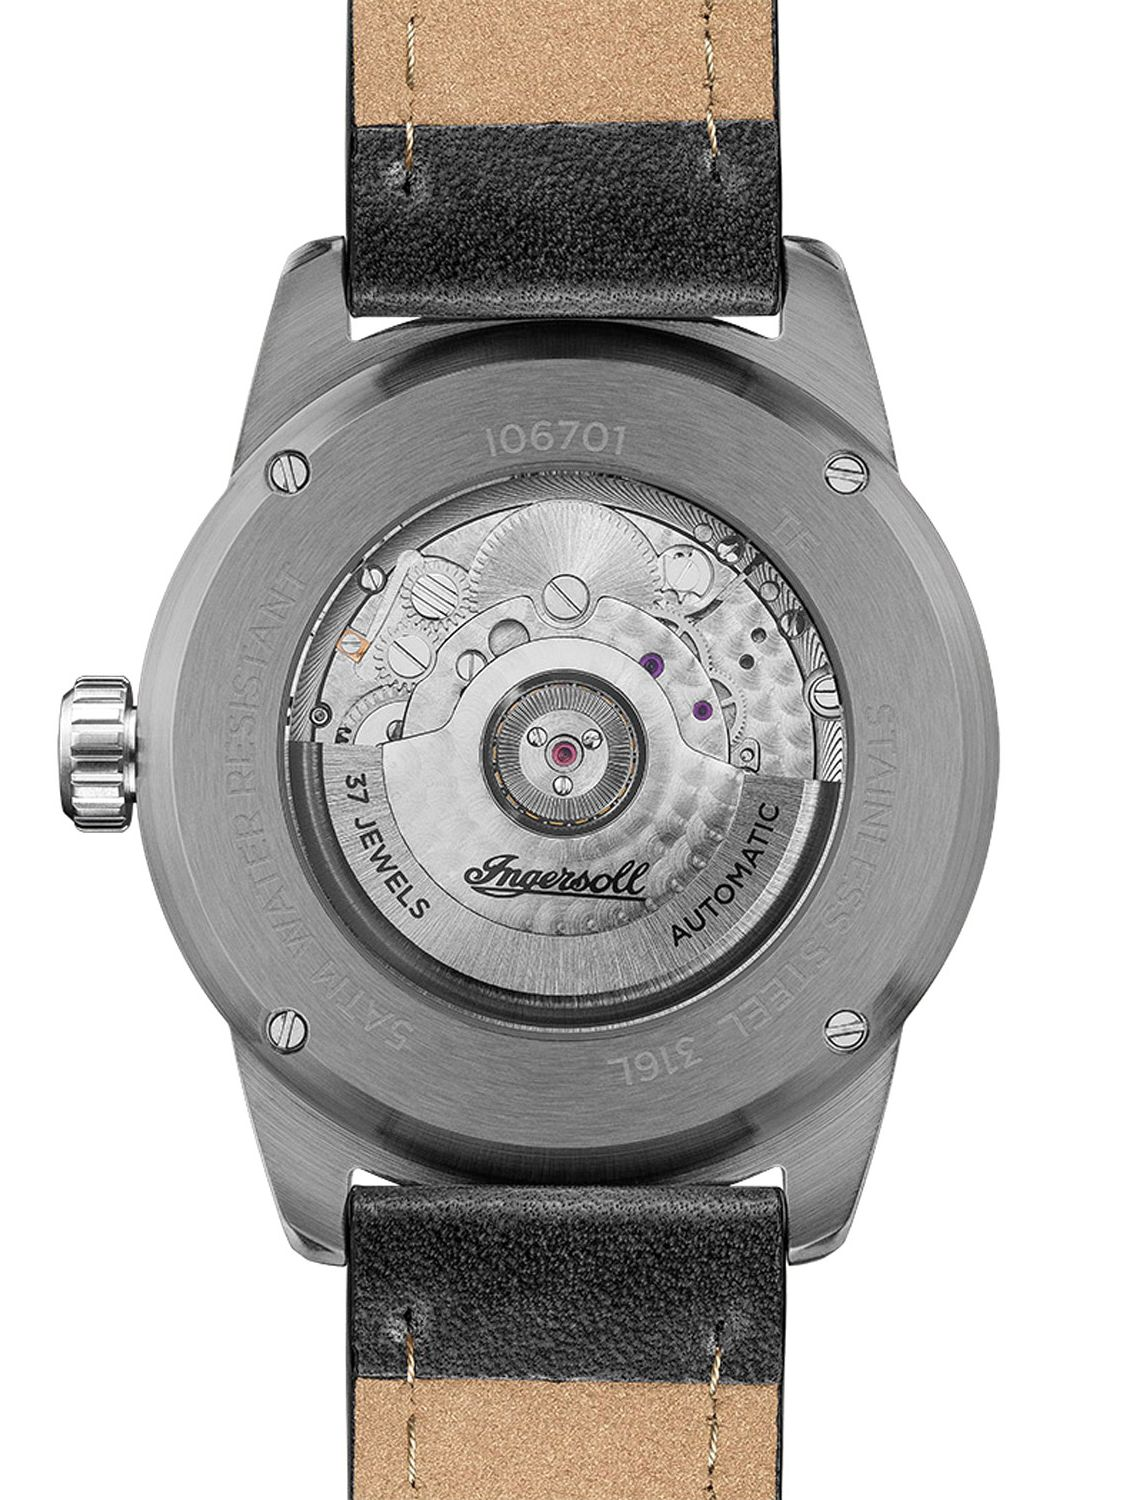 Ingersoll Automatik Ingersoll I06701 Men S Automatic Watch The Triumph